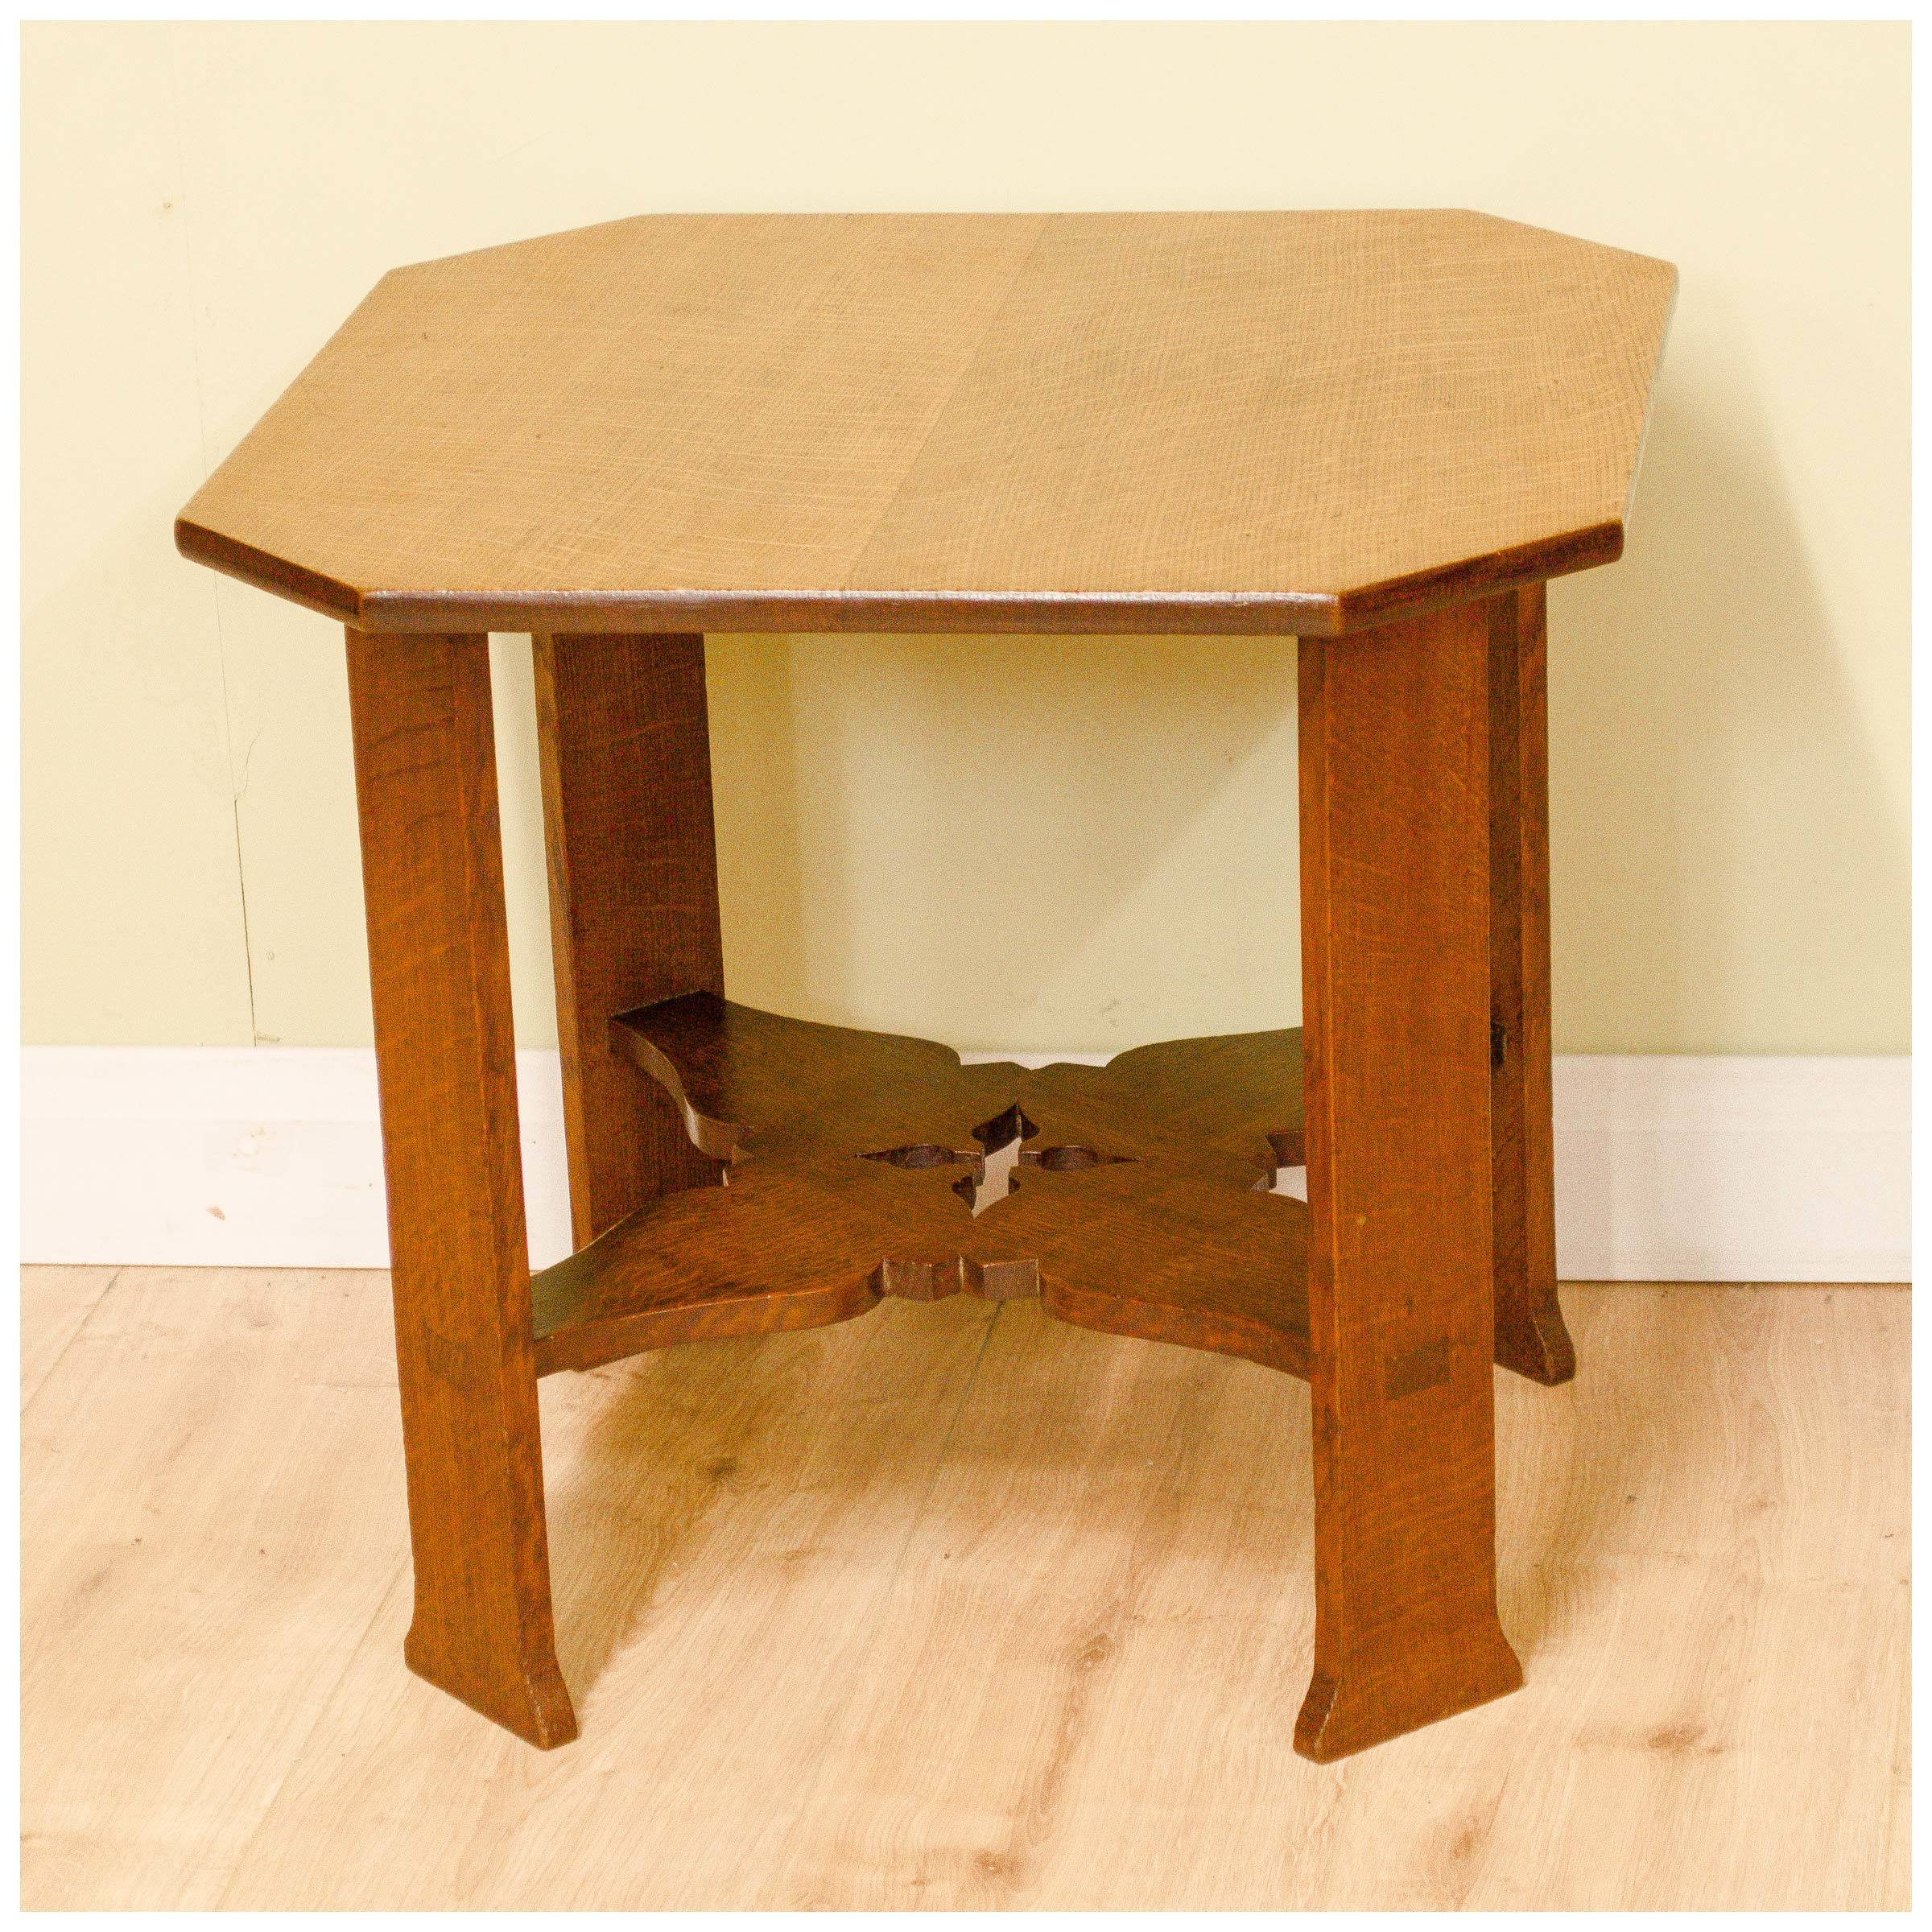 arts-and-crafts-oak-side-table-by-arthur-w-simpson-the-handicrafts-kendal-b0020110a.jpg